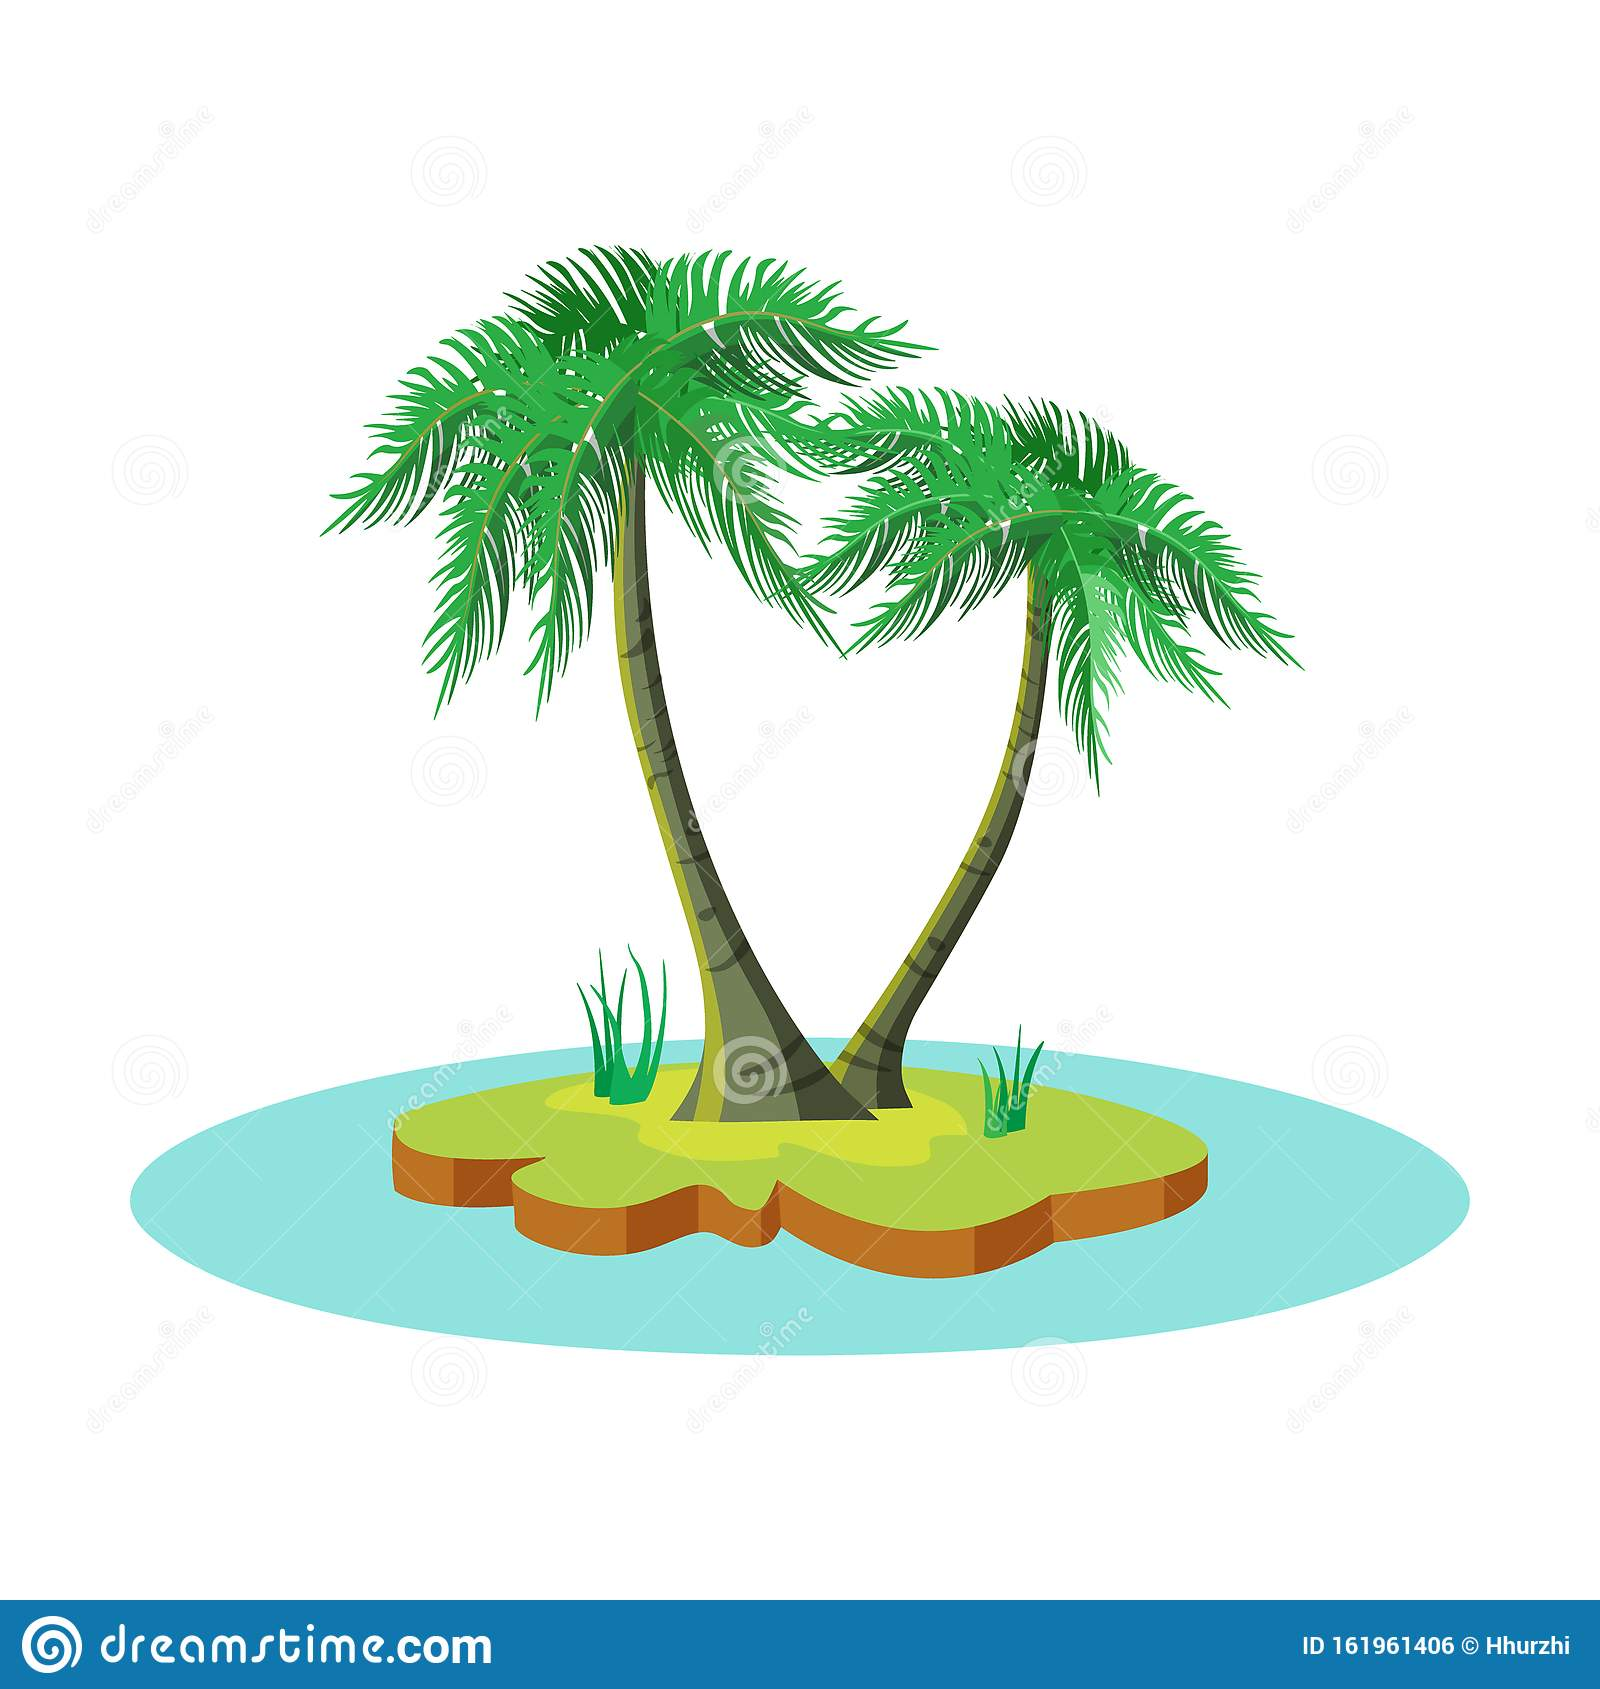 Cartoon Island With Two Coconut Palm Trees Stock Vector ...